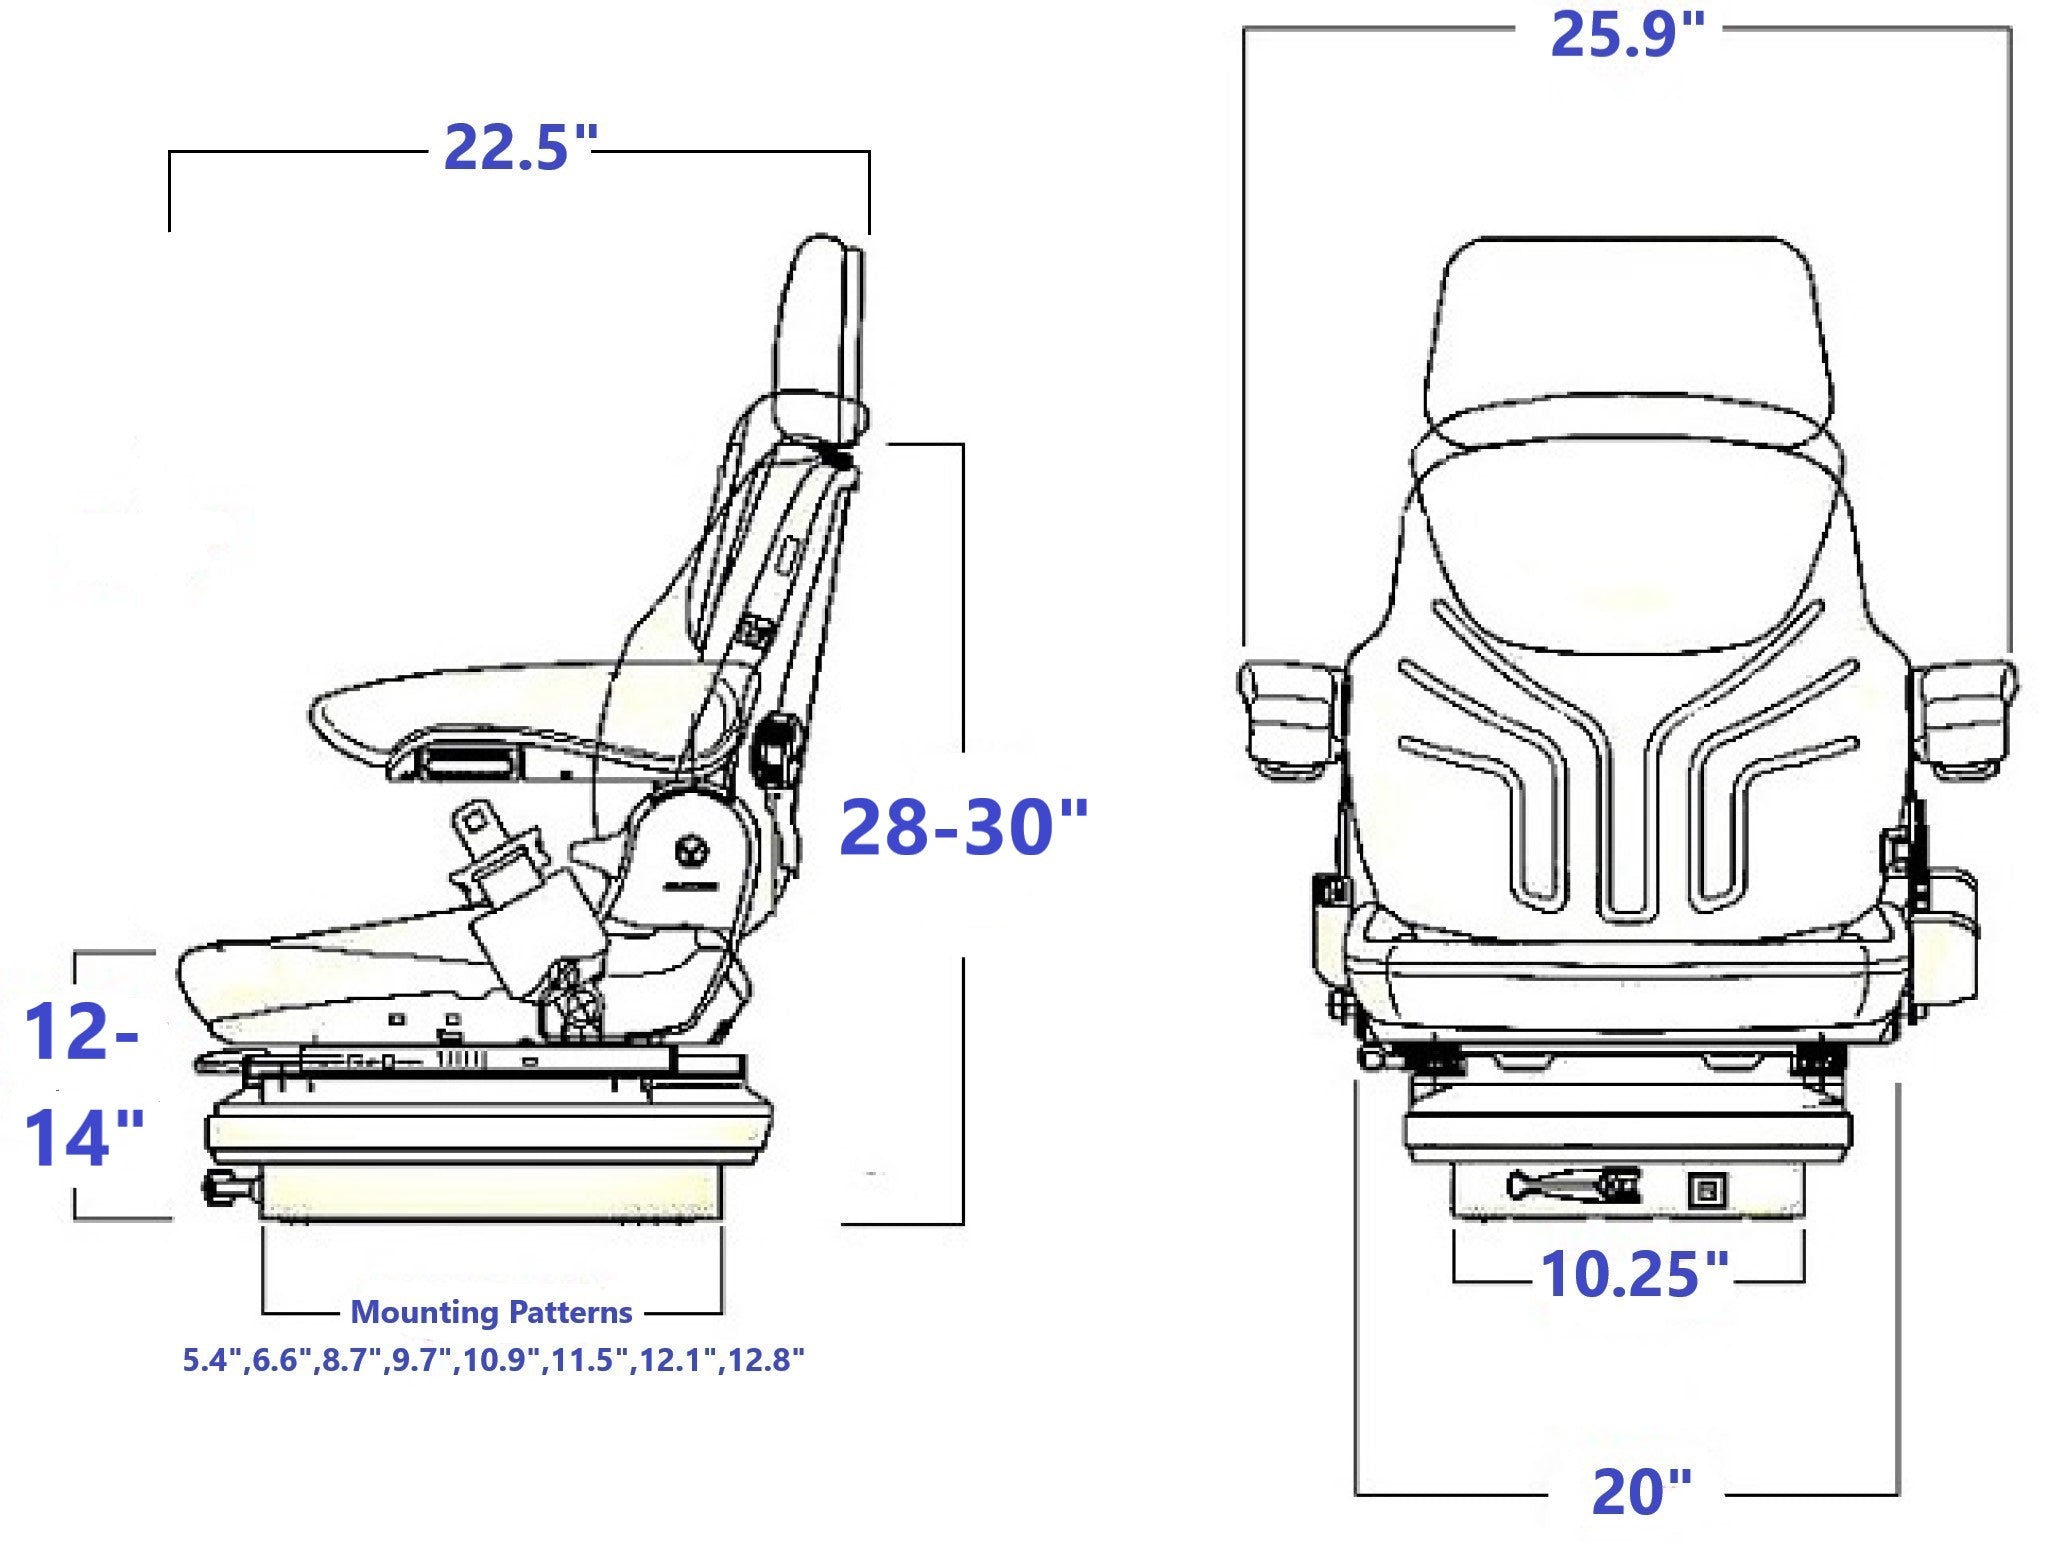 Grammer MSG85/731S Technical Drawing